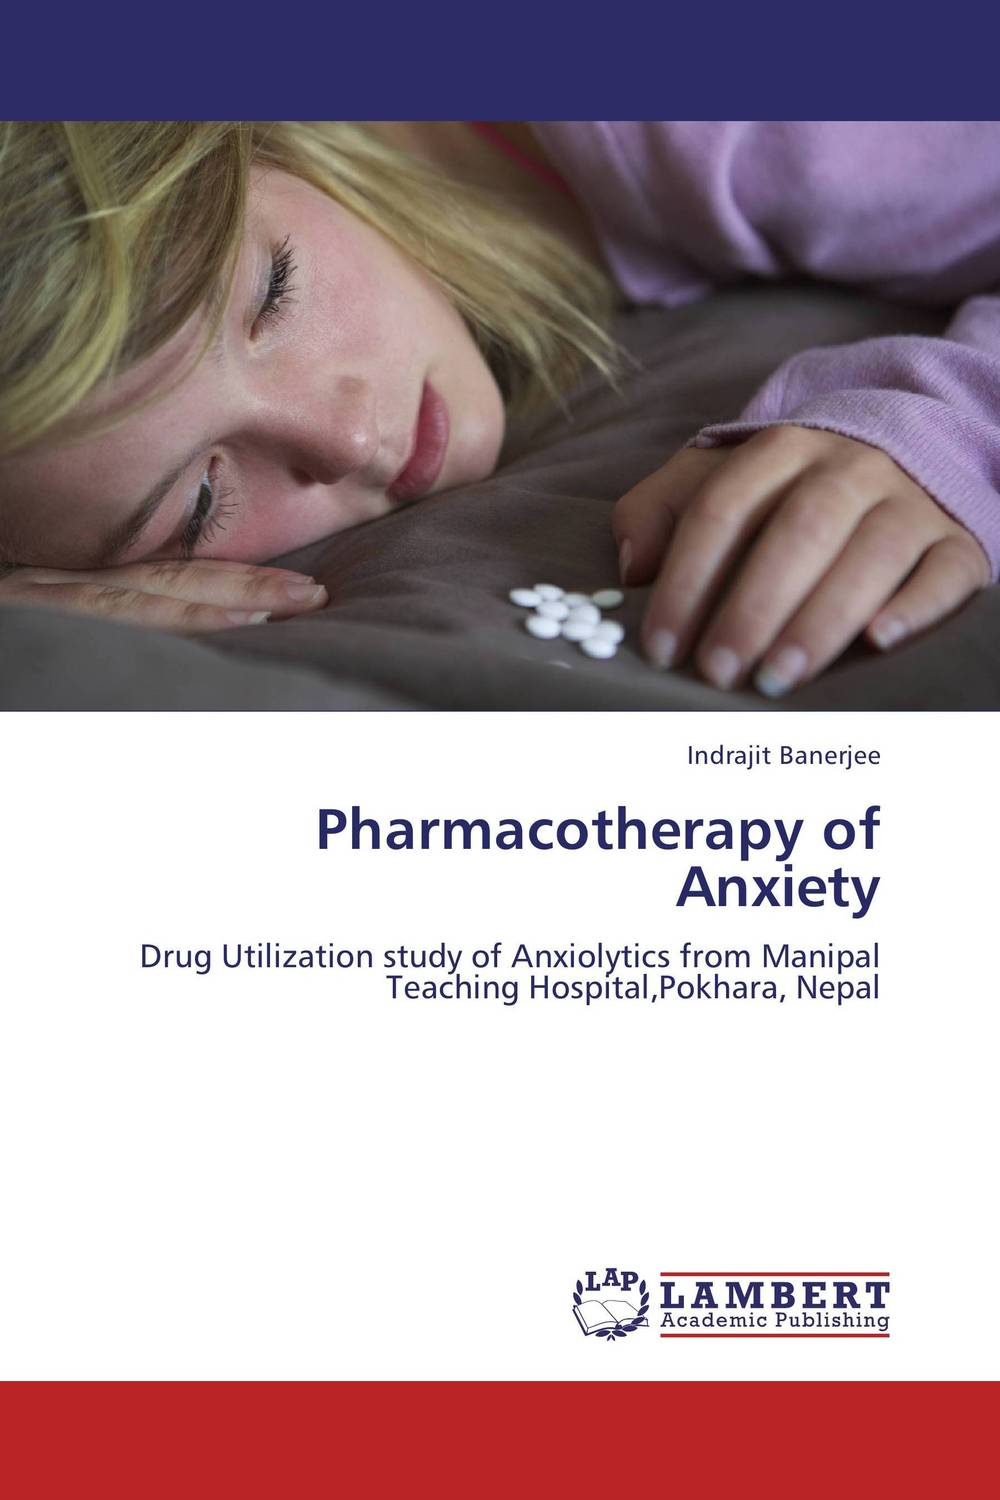 Pharmacotherapy of Anxiety stefan hofmann g psychobiological approaches for anxiety disorders treatment combination strategies